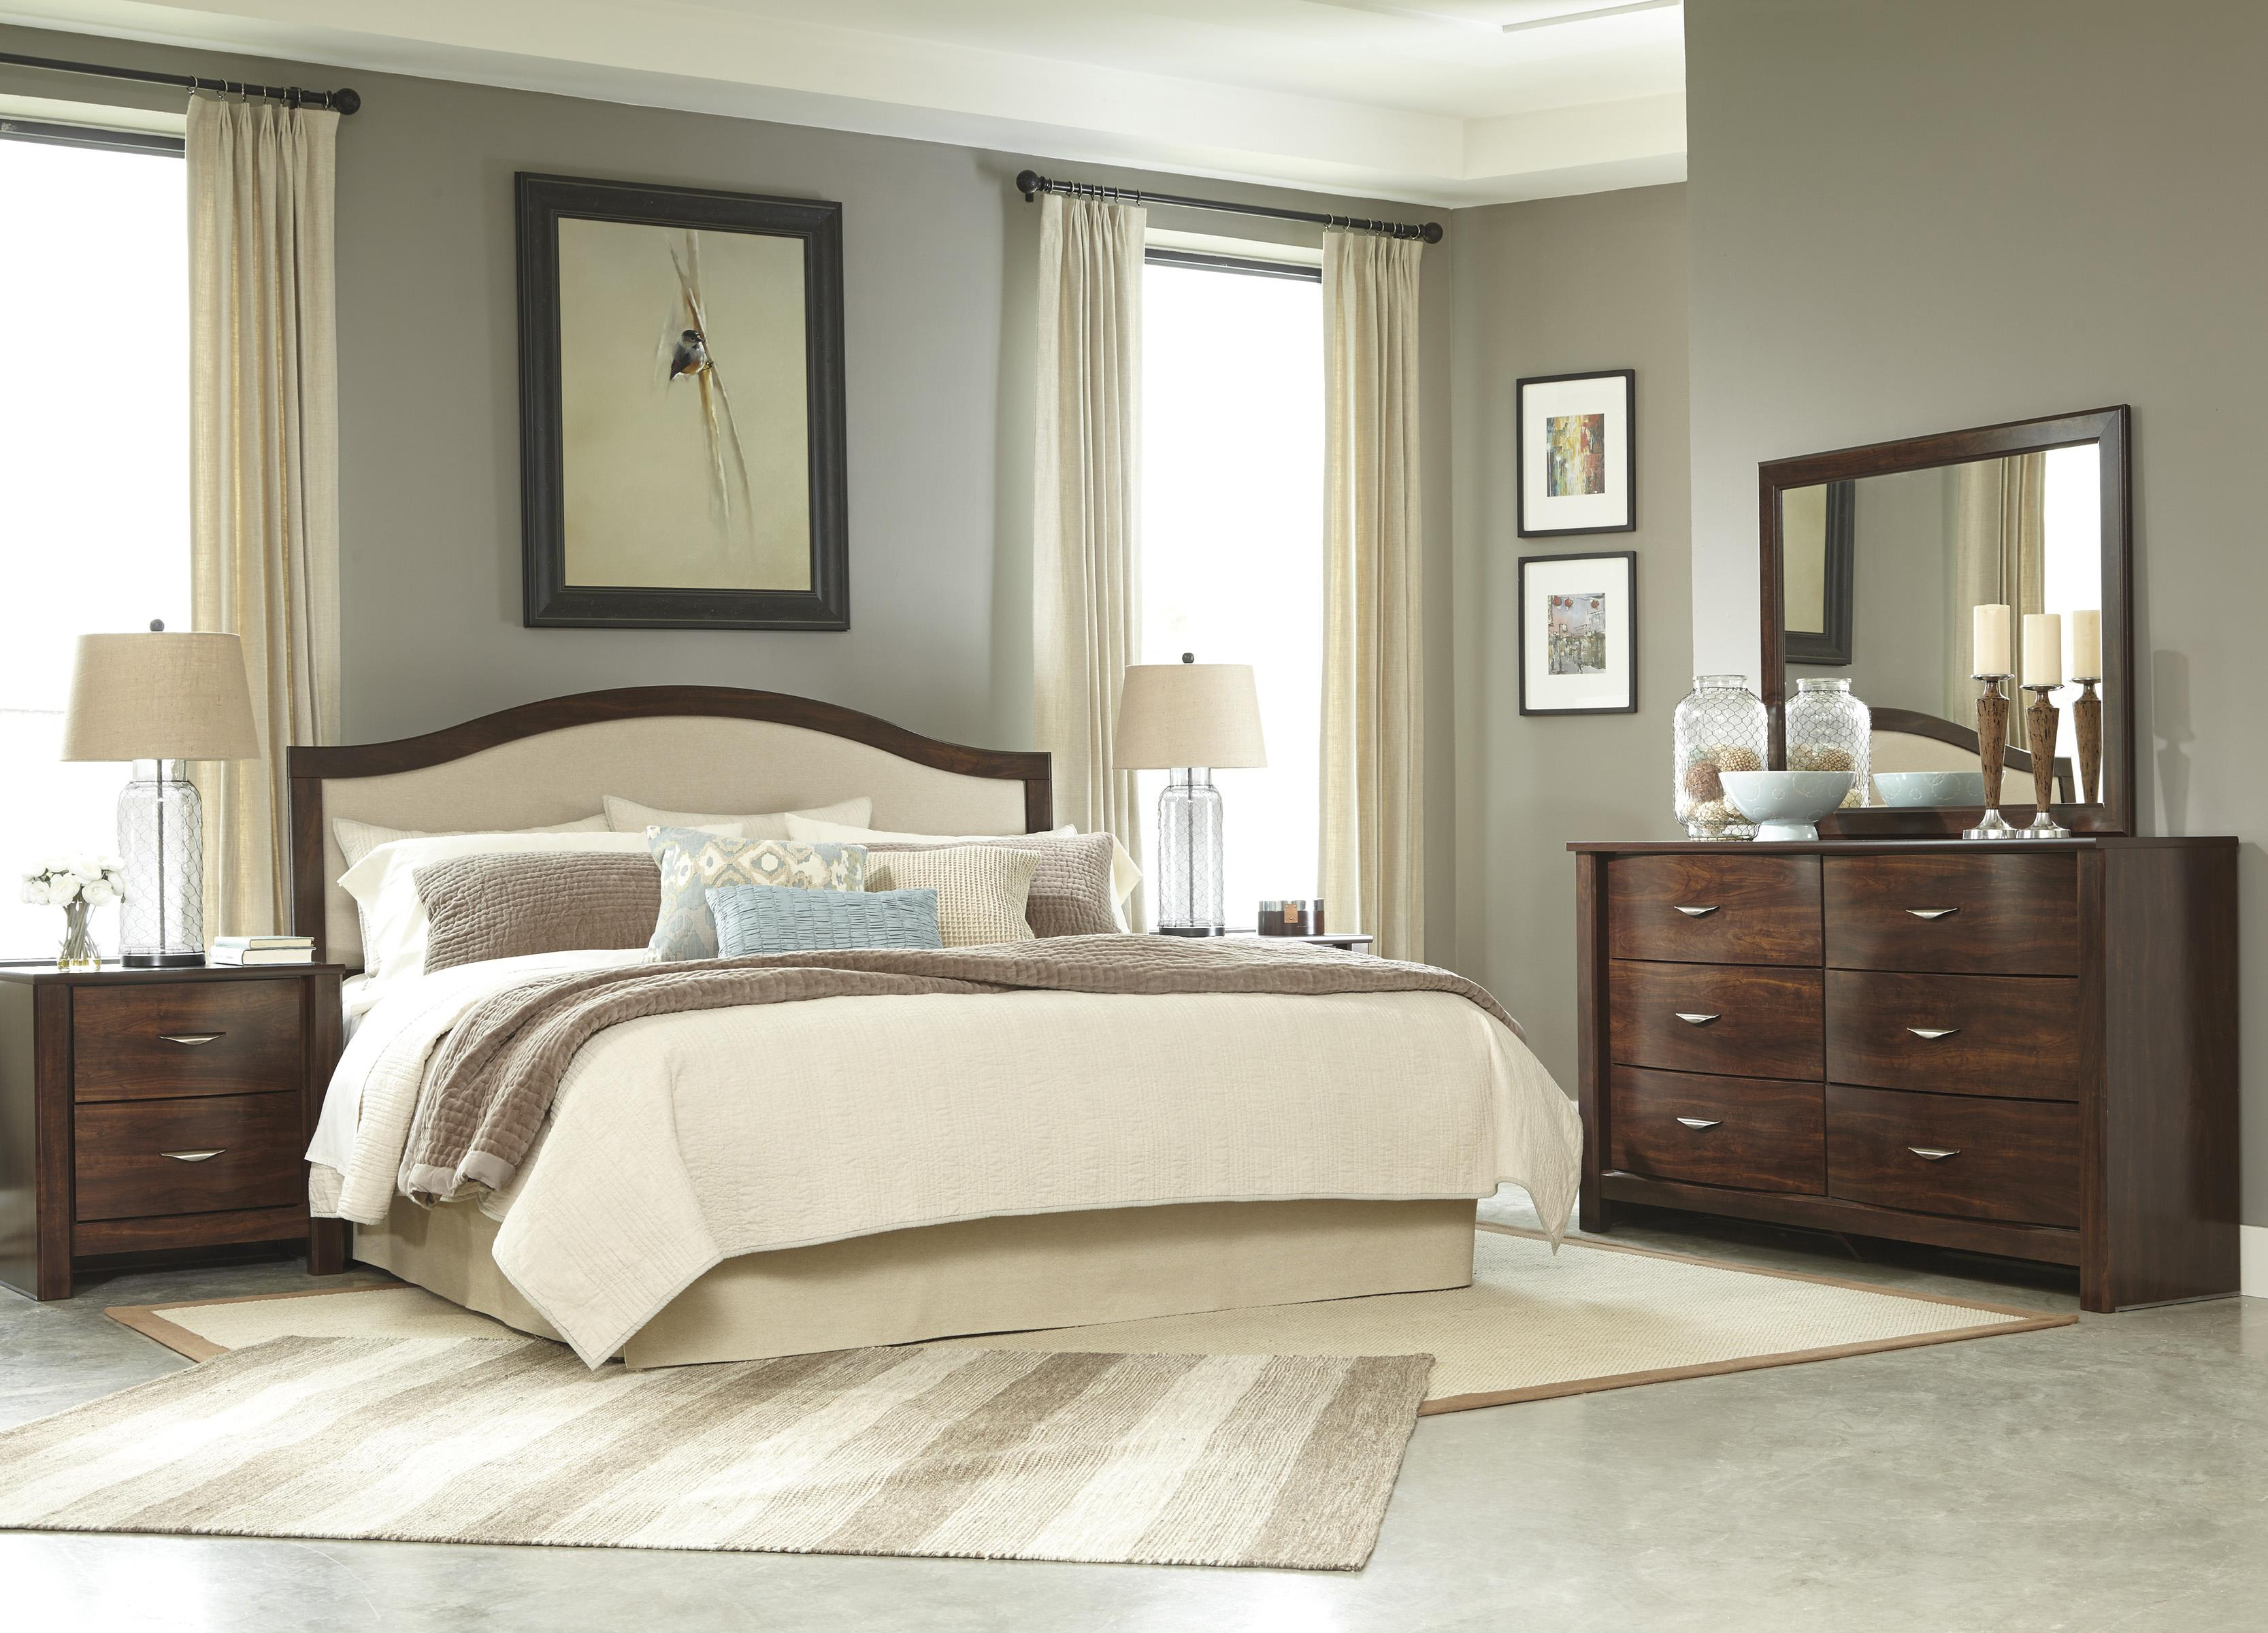 Signature Design by Ashley Corraya King Bedroom Group - Item Number: B428 K Bedroom Group 1